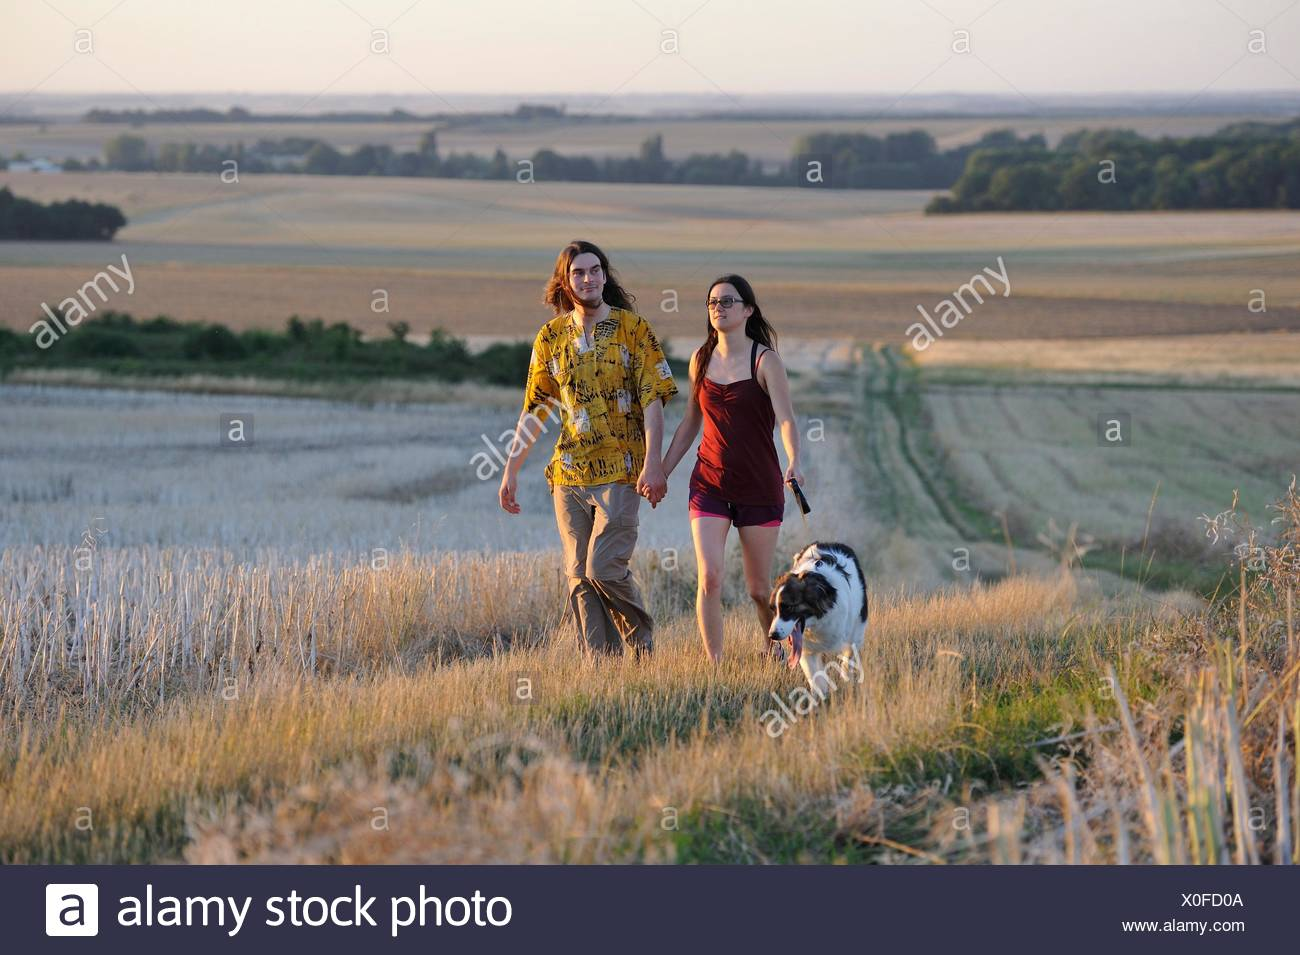 couple of young people walking with a dog around Mittainville, Yvelines department, Ile-de-France region, France, Europe. Stock Photo